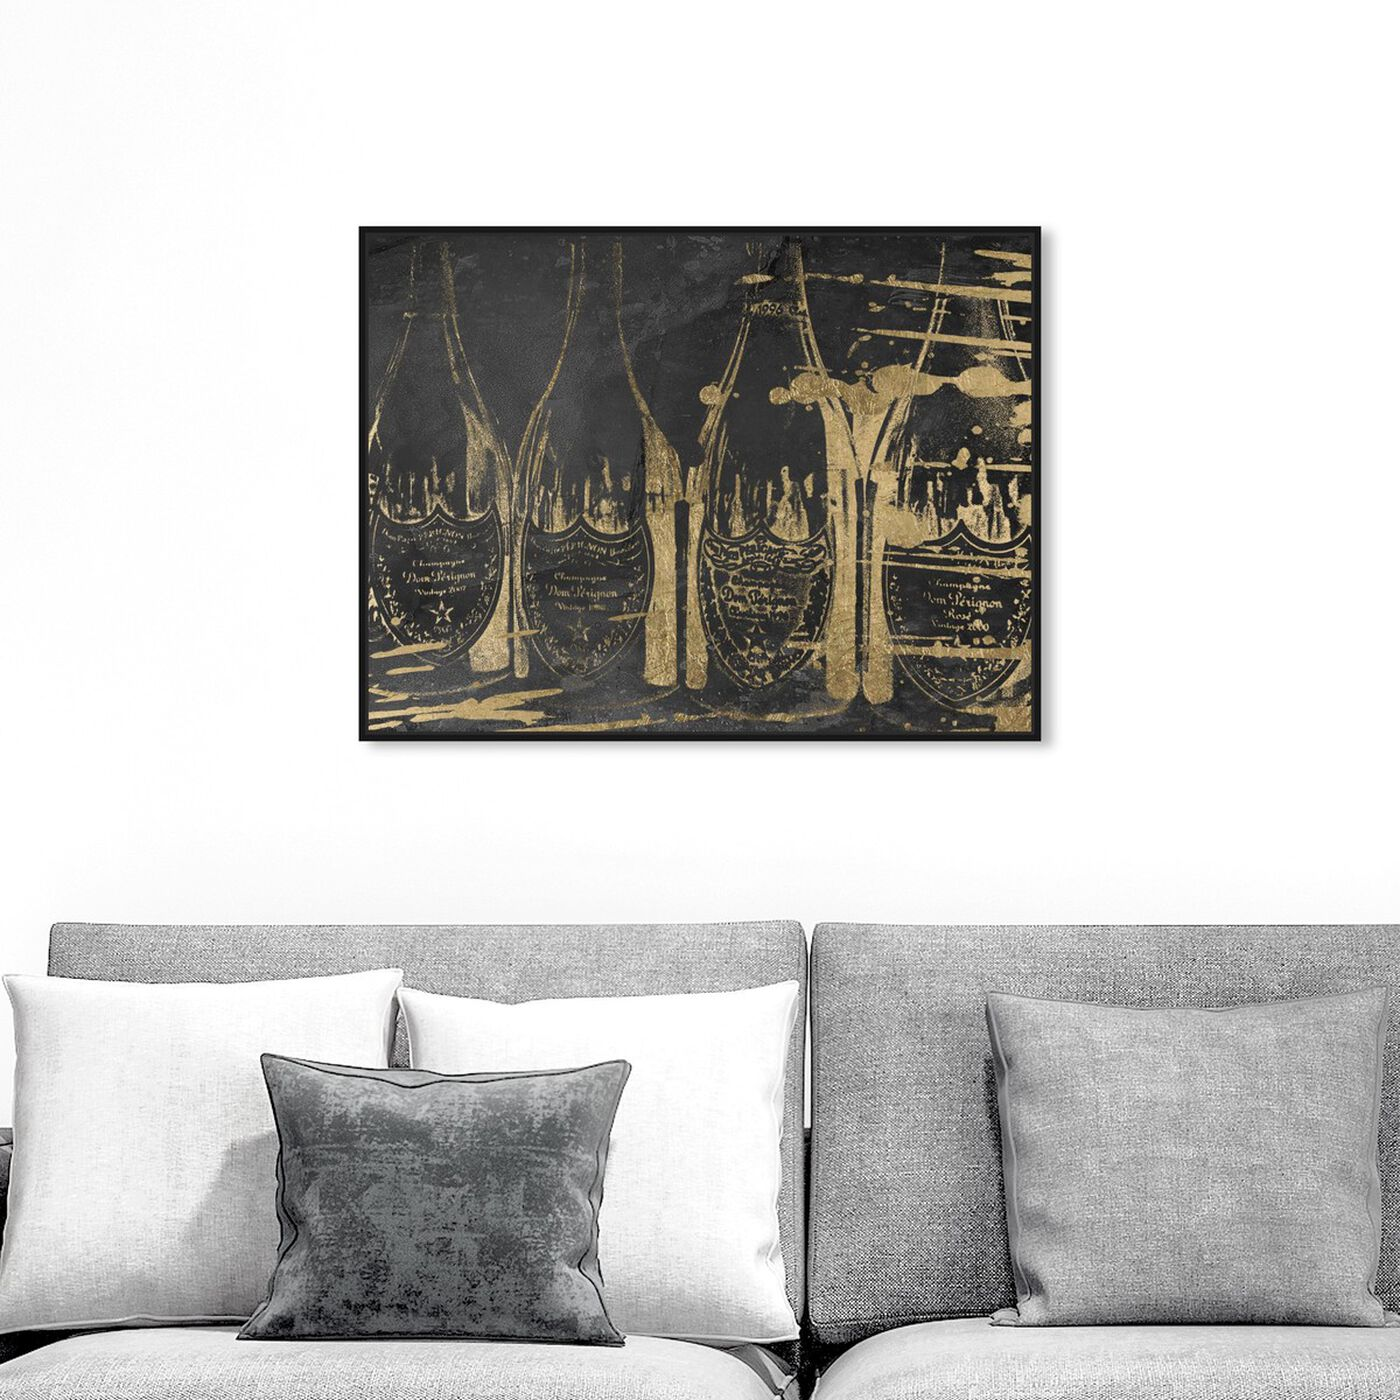 Hanging view of Dom P Revised featuring drinks and spirits and champagne art.